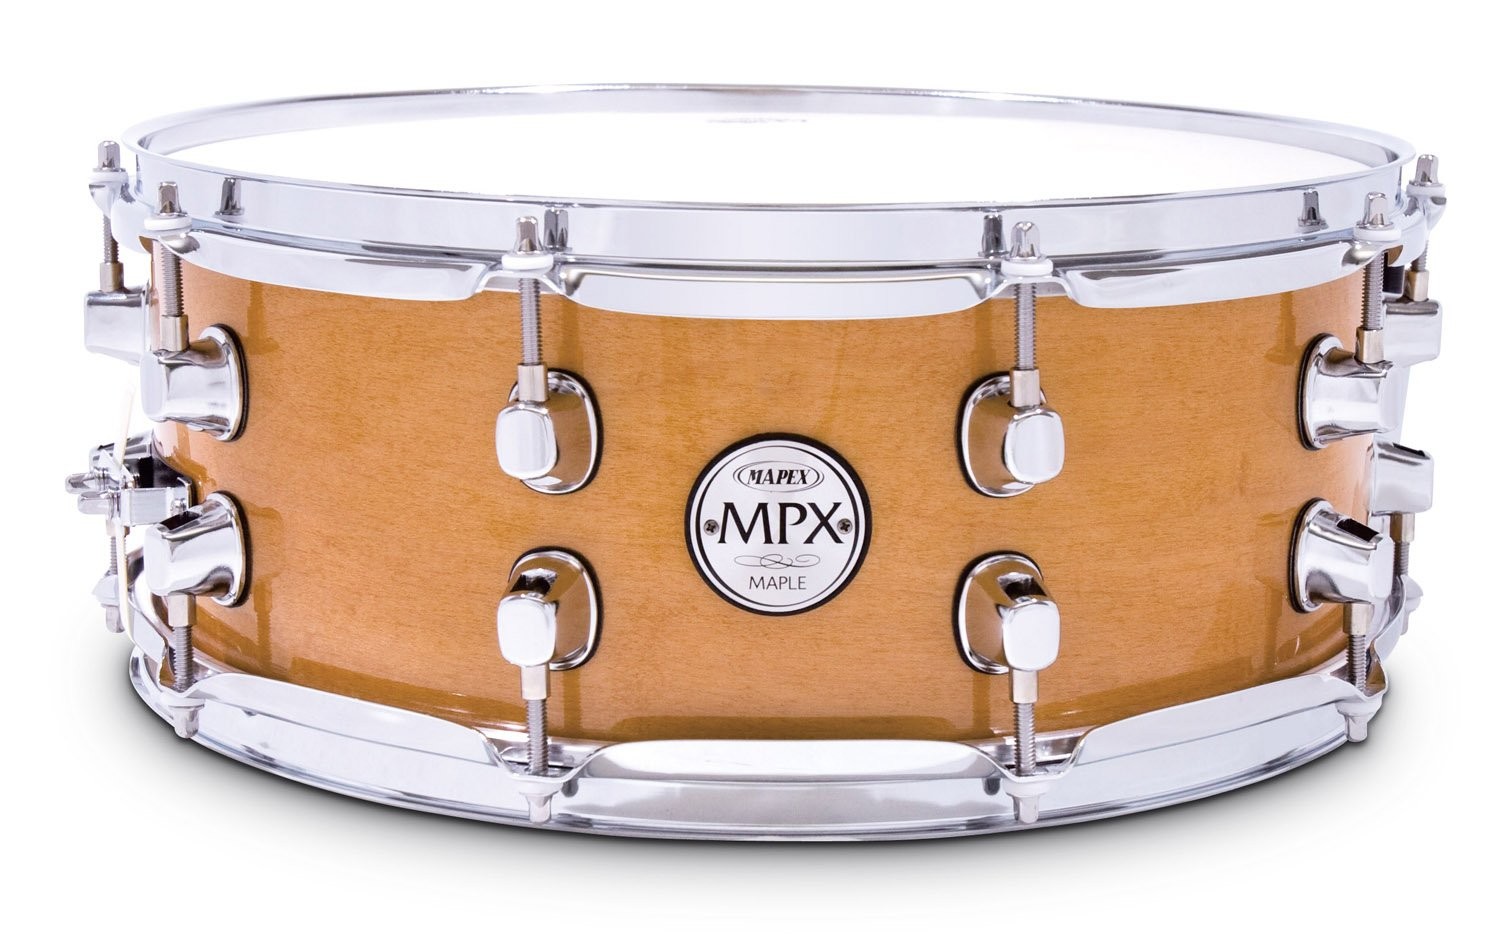 Mapex MPX14 inch x 5.5 inch all maple snare drum in natural finish with chrome hardware by Mapex